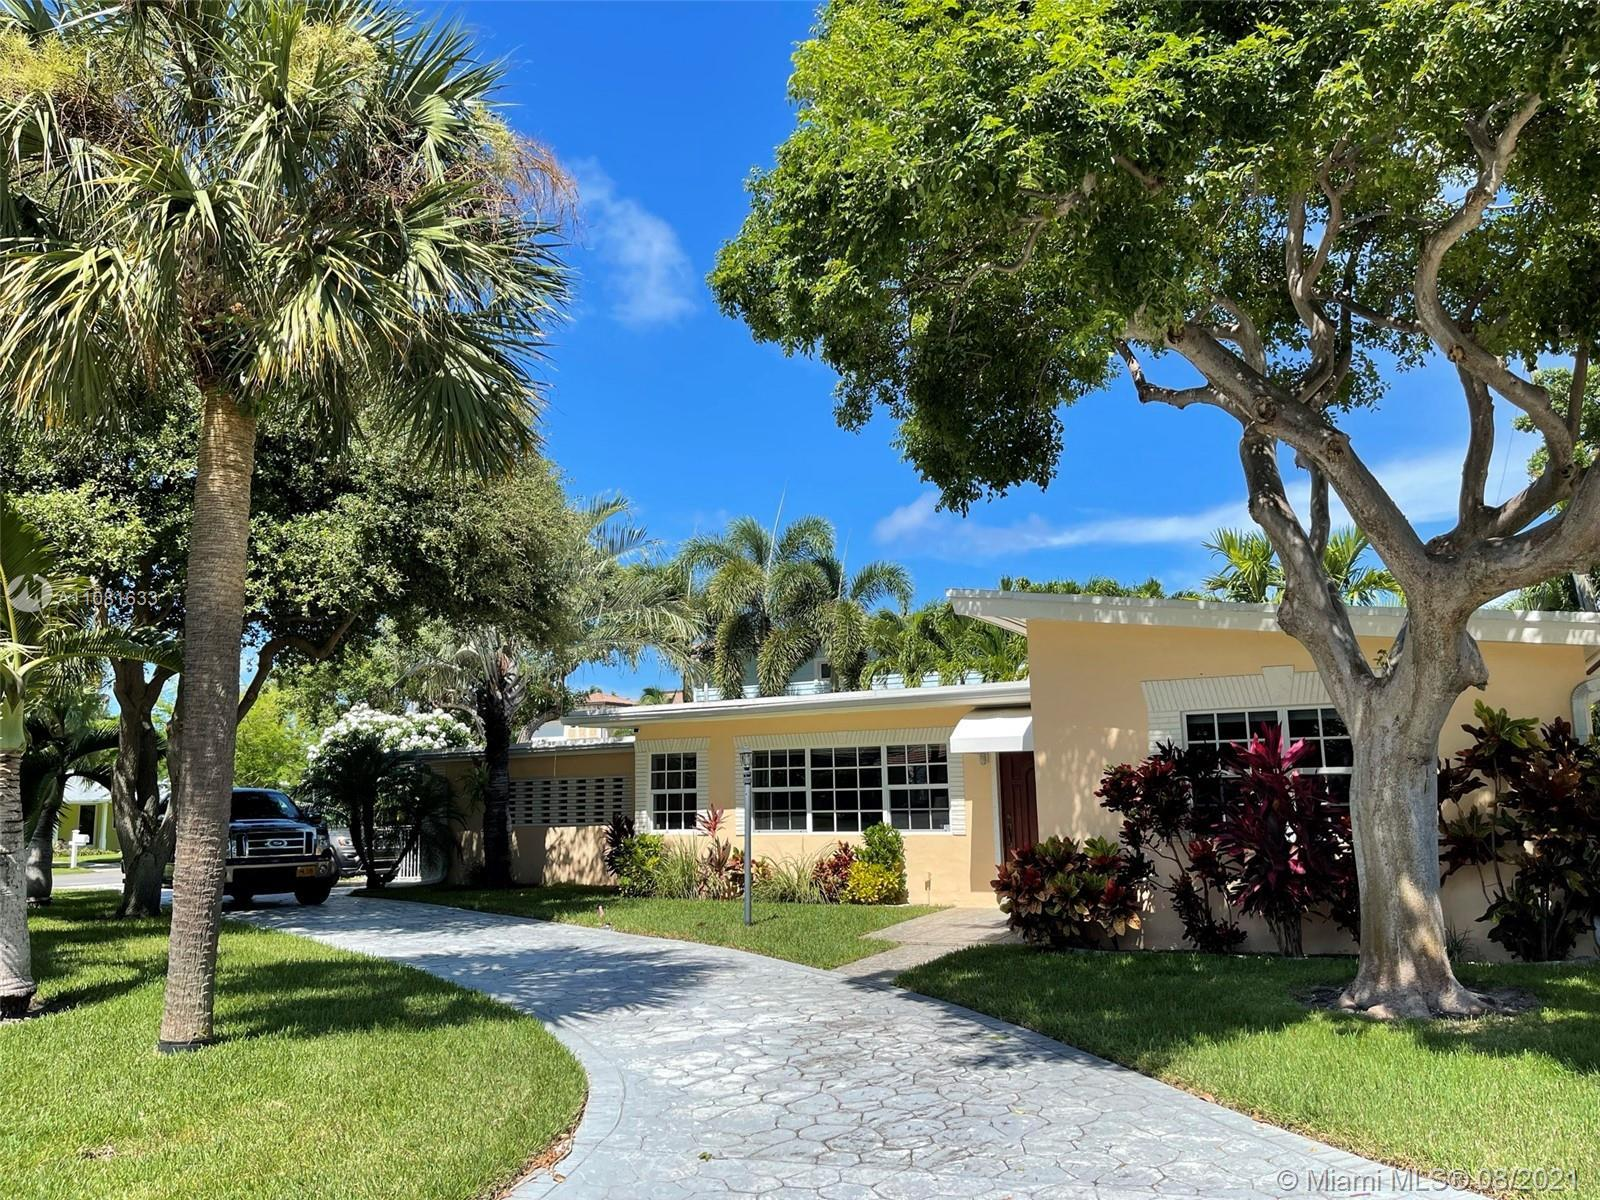 Gorgeous home in highly sought-after Hillsboro Shores, situated between the ocean and the Intracoast